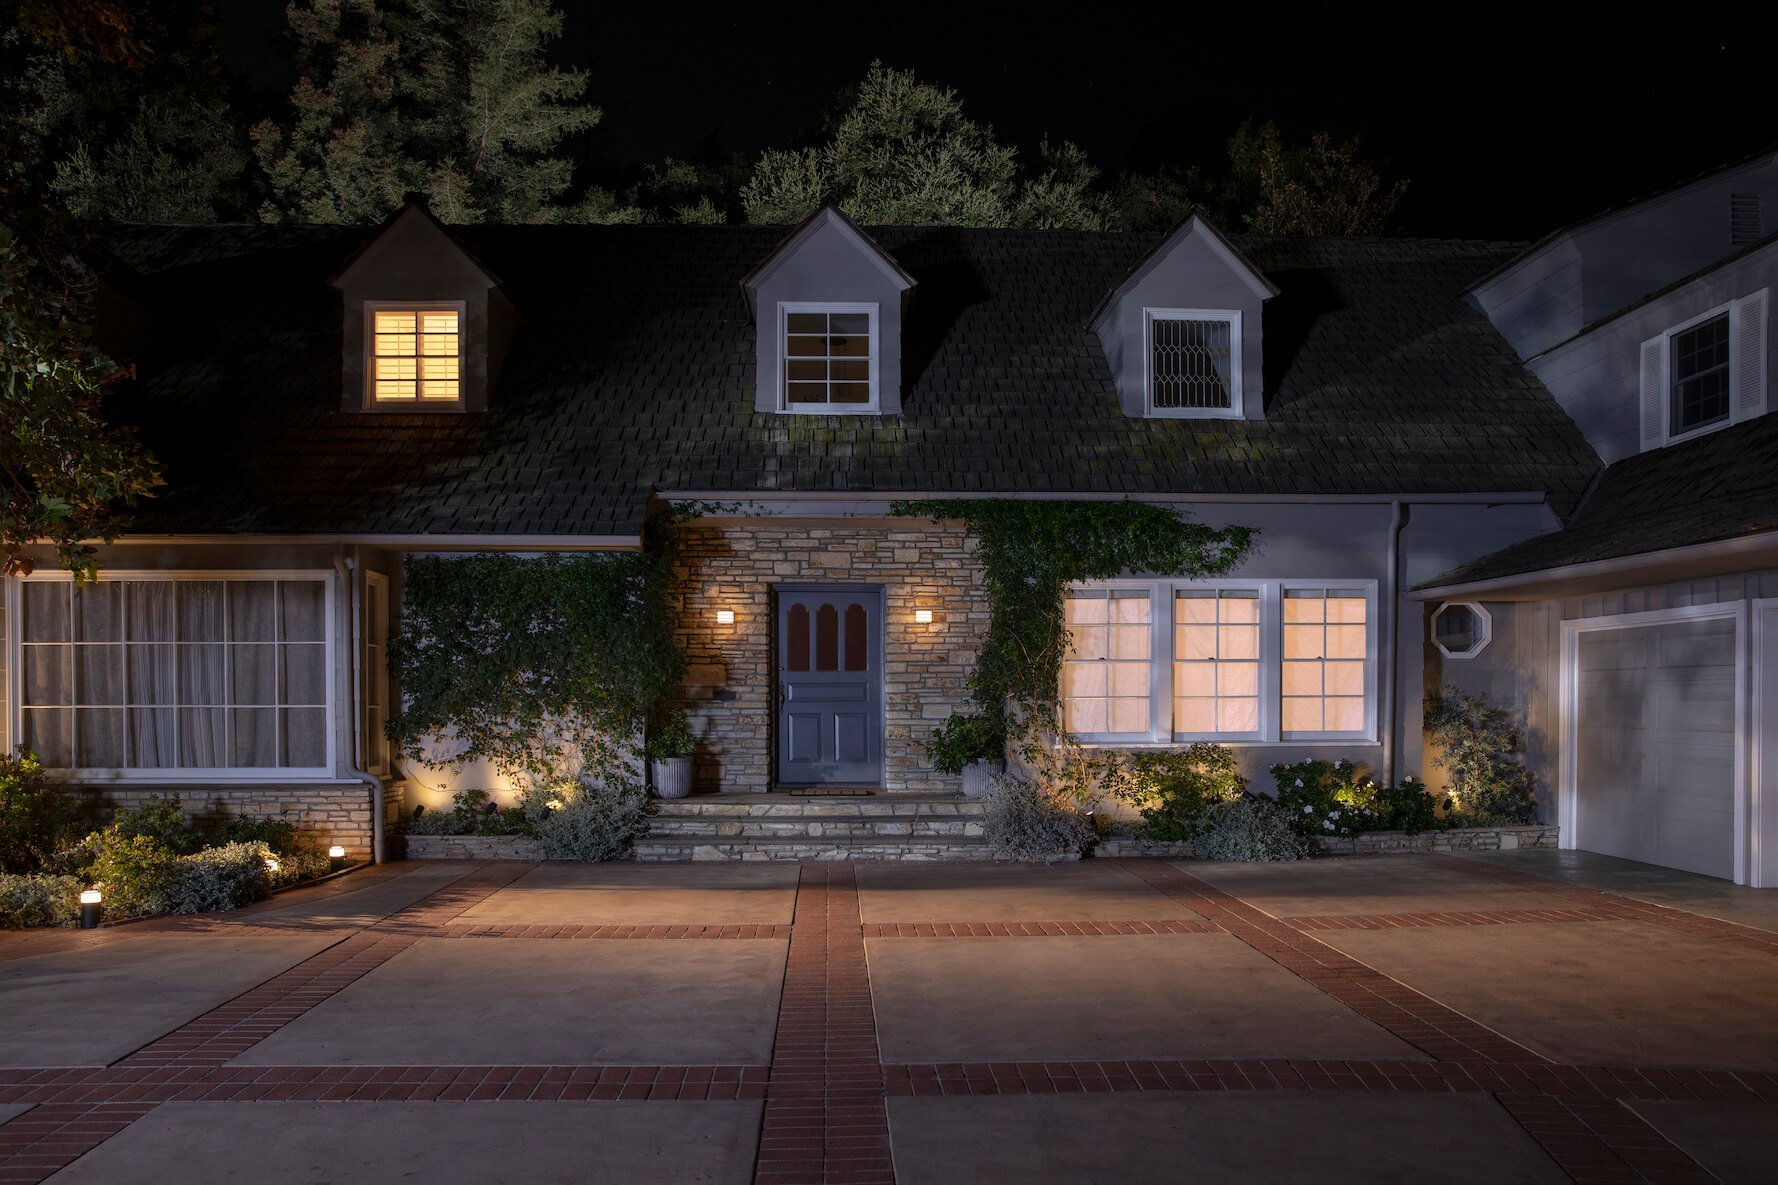 Automate your Smart lighting with out-of-home timers